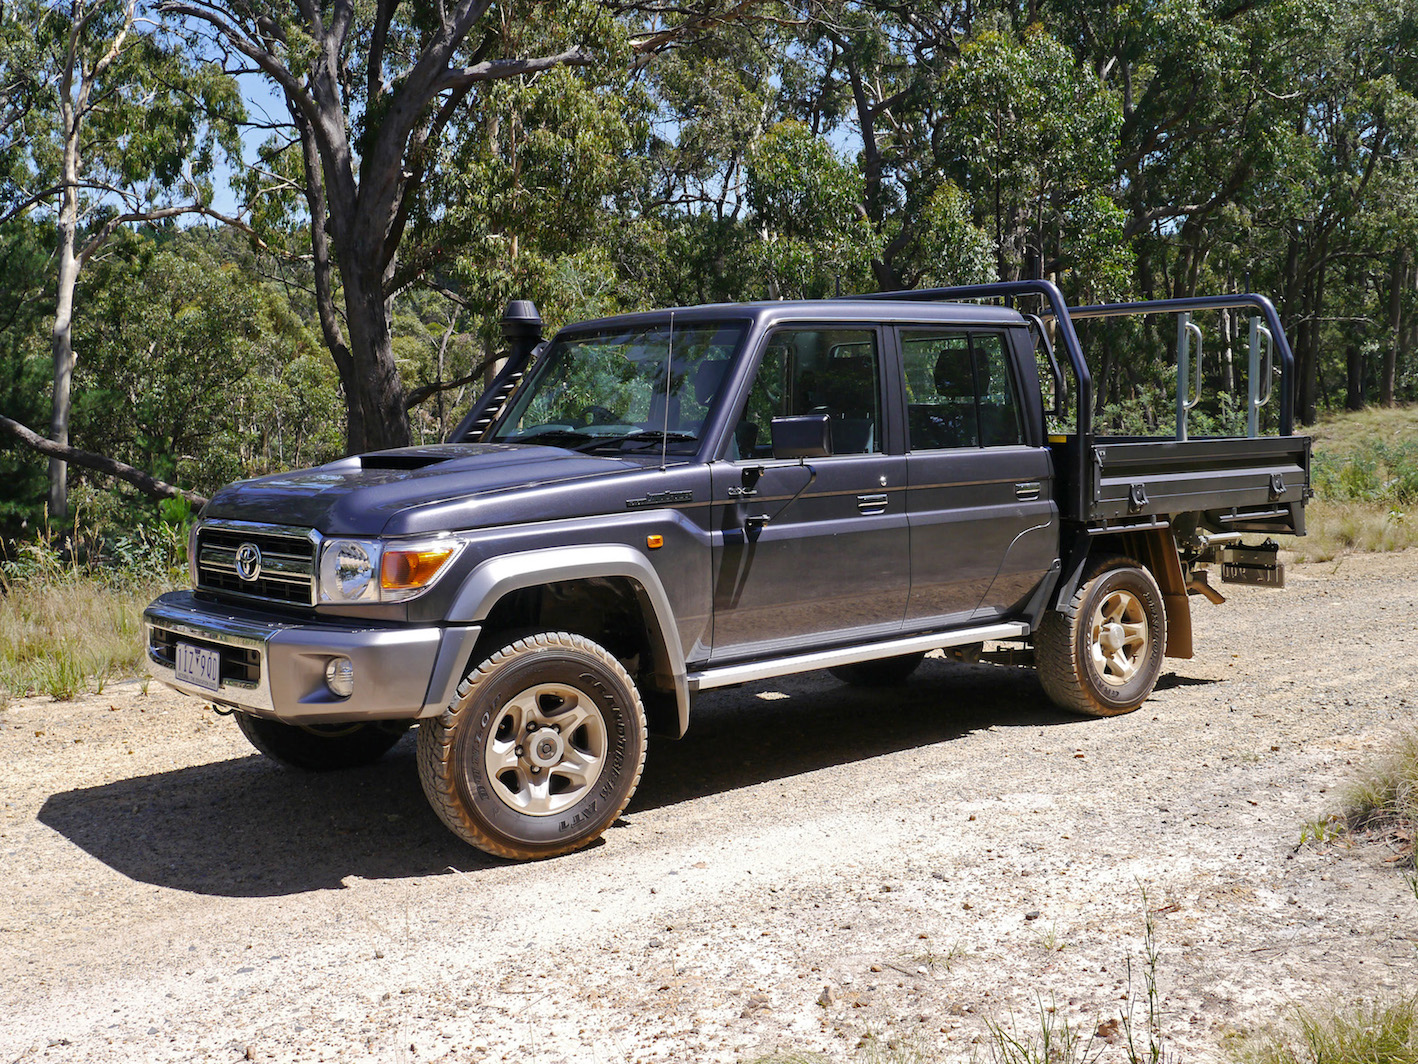 2017 Toyota LandCruiser 79 GXL Dual Cab Review   An Essential Addition To Any Outback-Aussie Toolkit